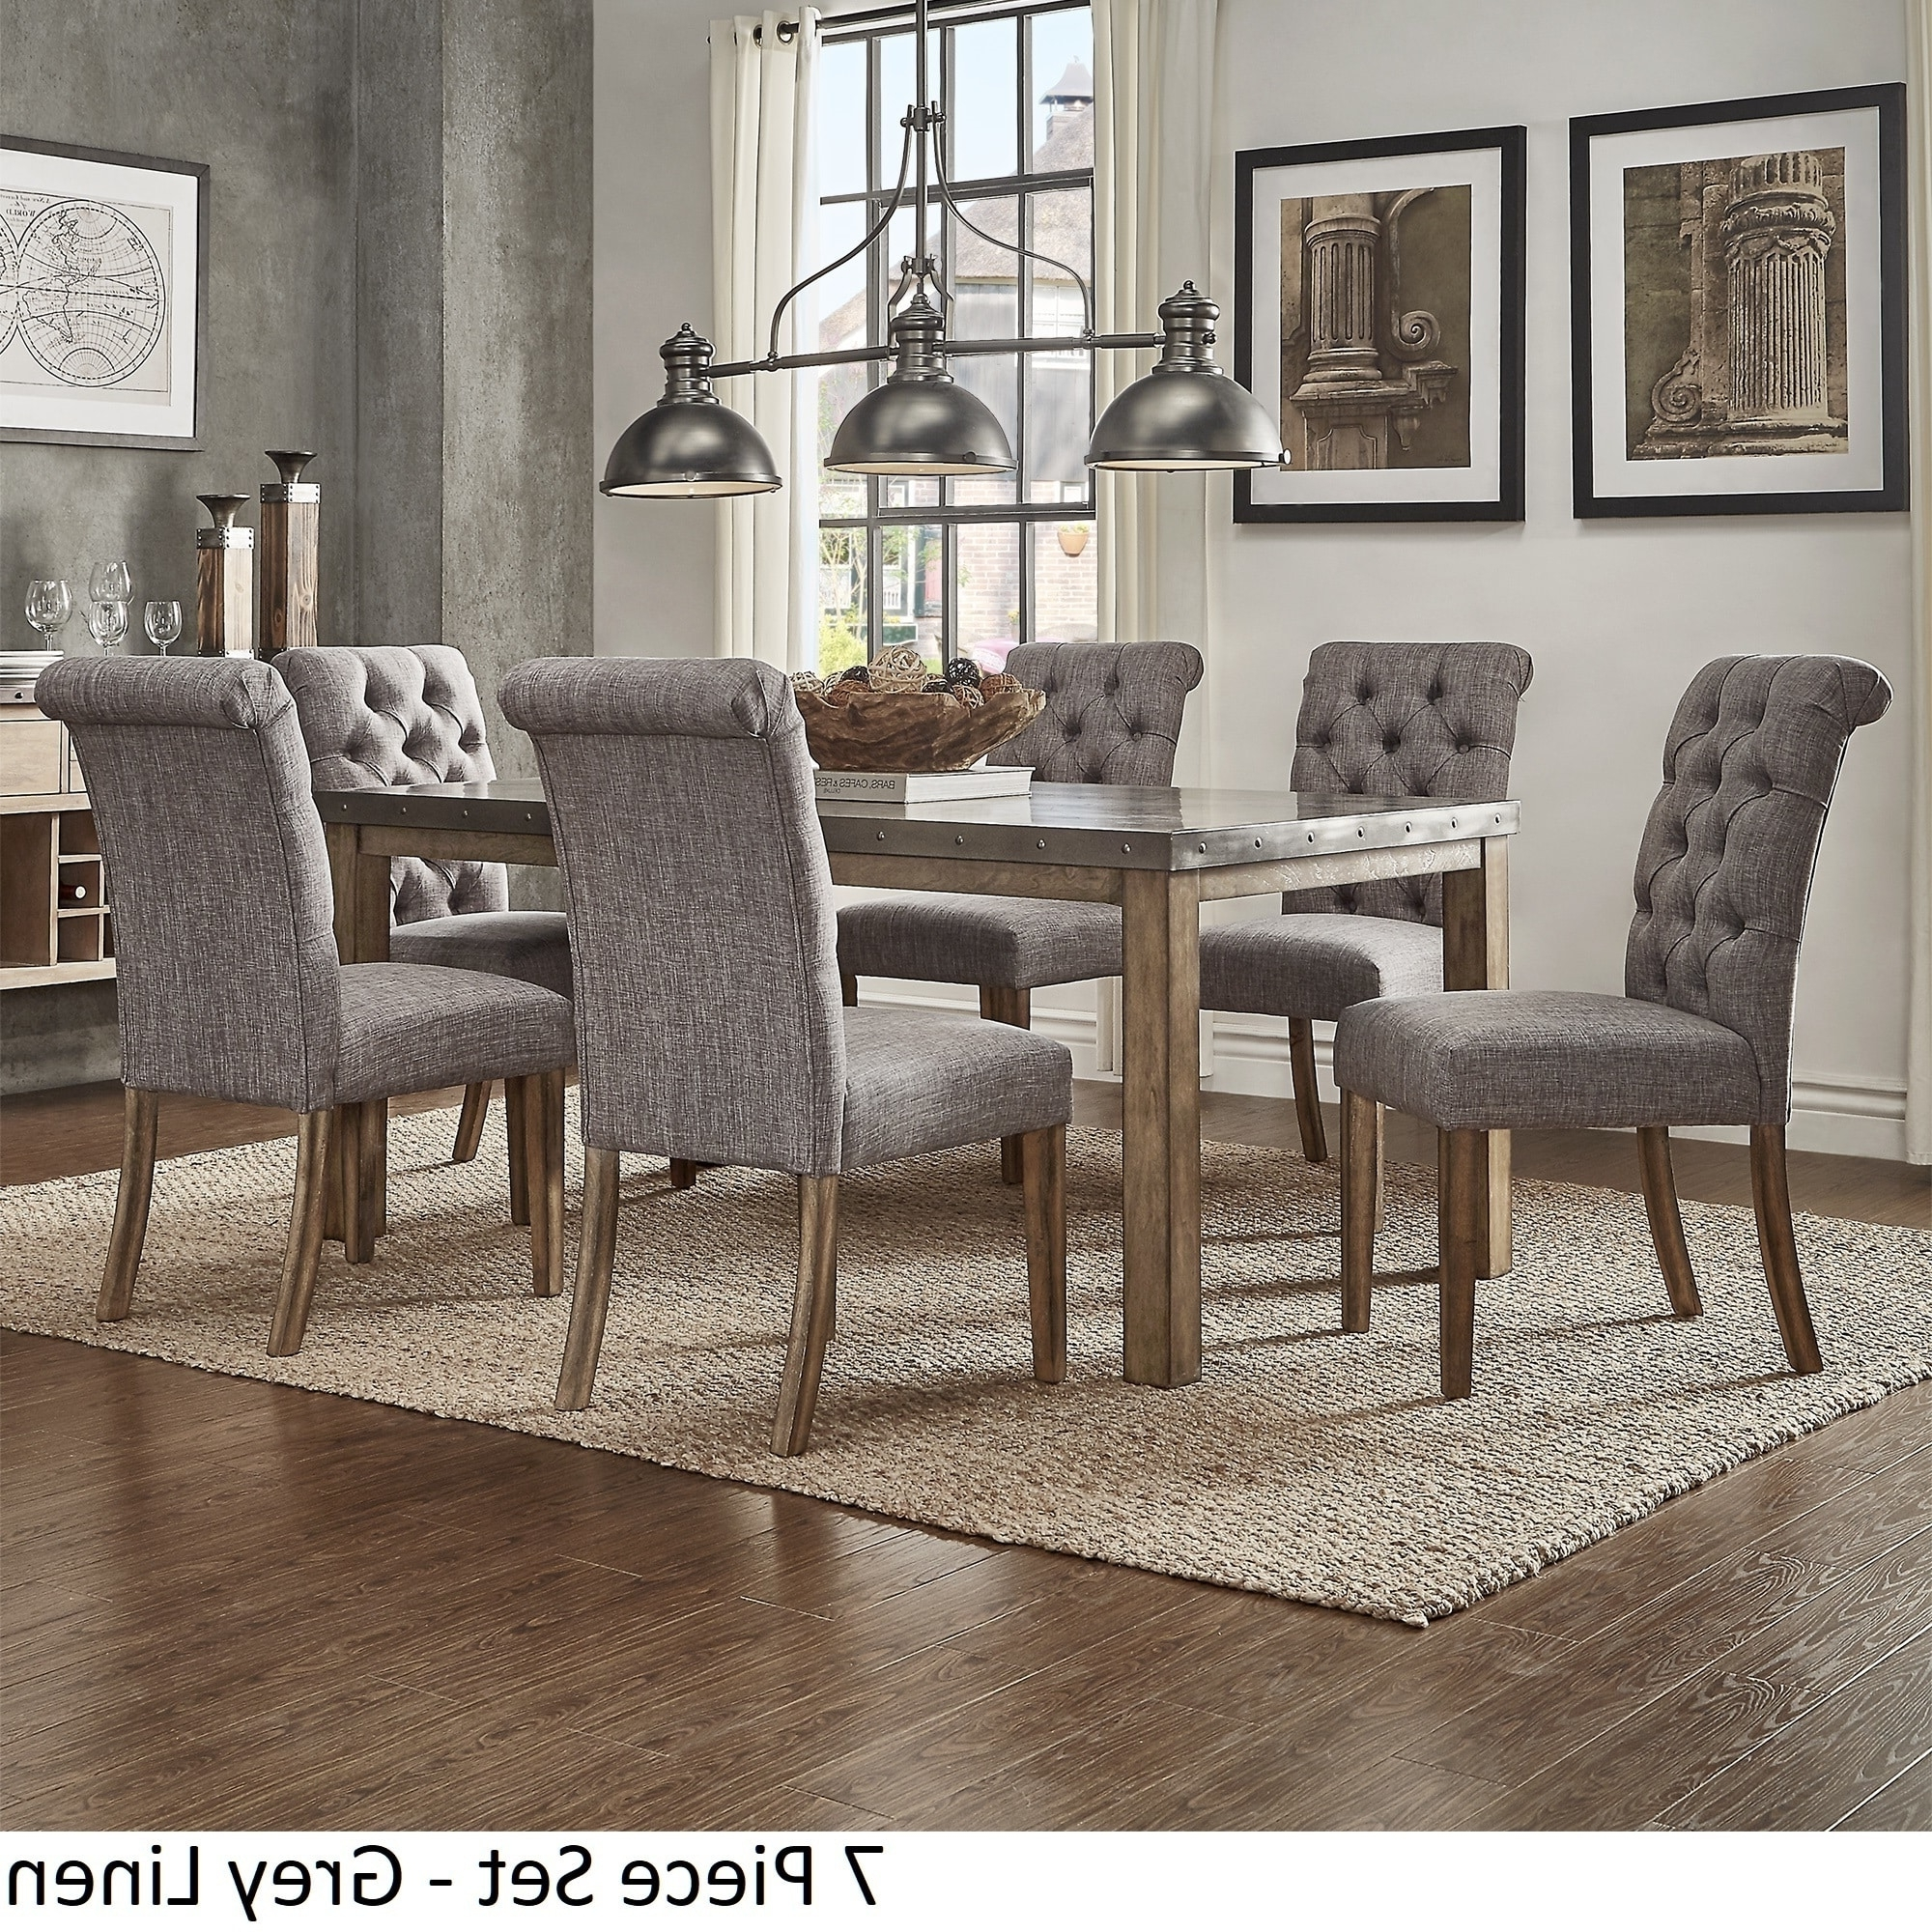 Most Recently Released Cassidy Stainless Steel Top Rectangle Dining Table Setinspire Q For Laurent 7 Piece Rectangle Dining Sets With Wood Chairs (View 18 of 25)